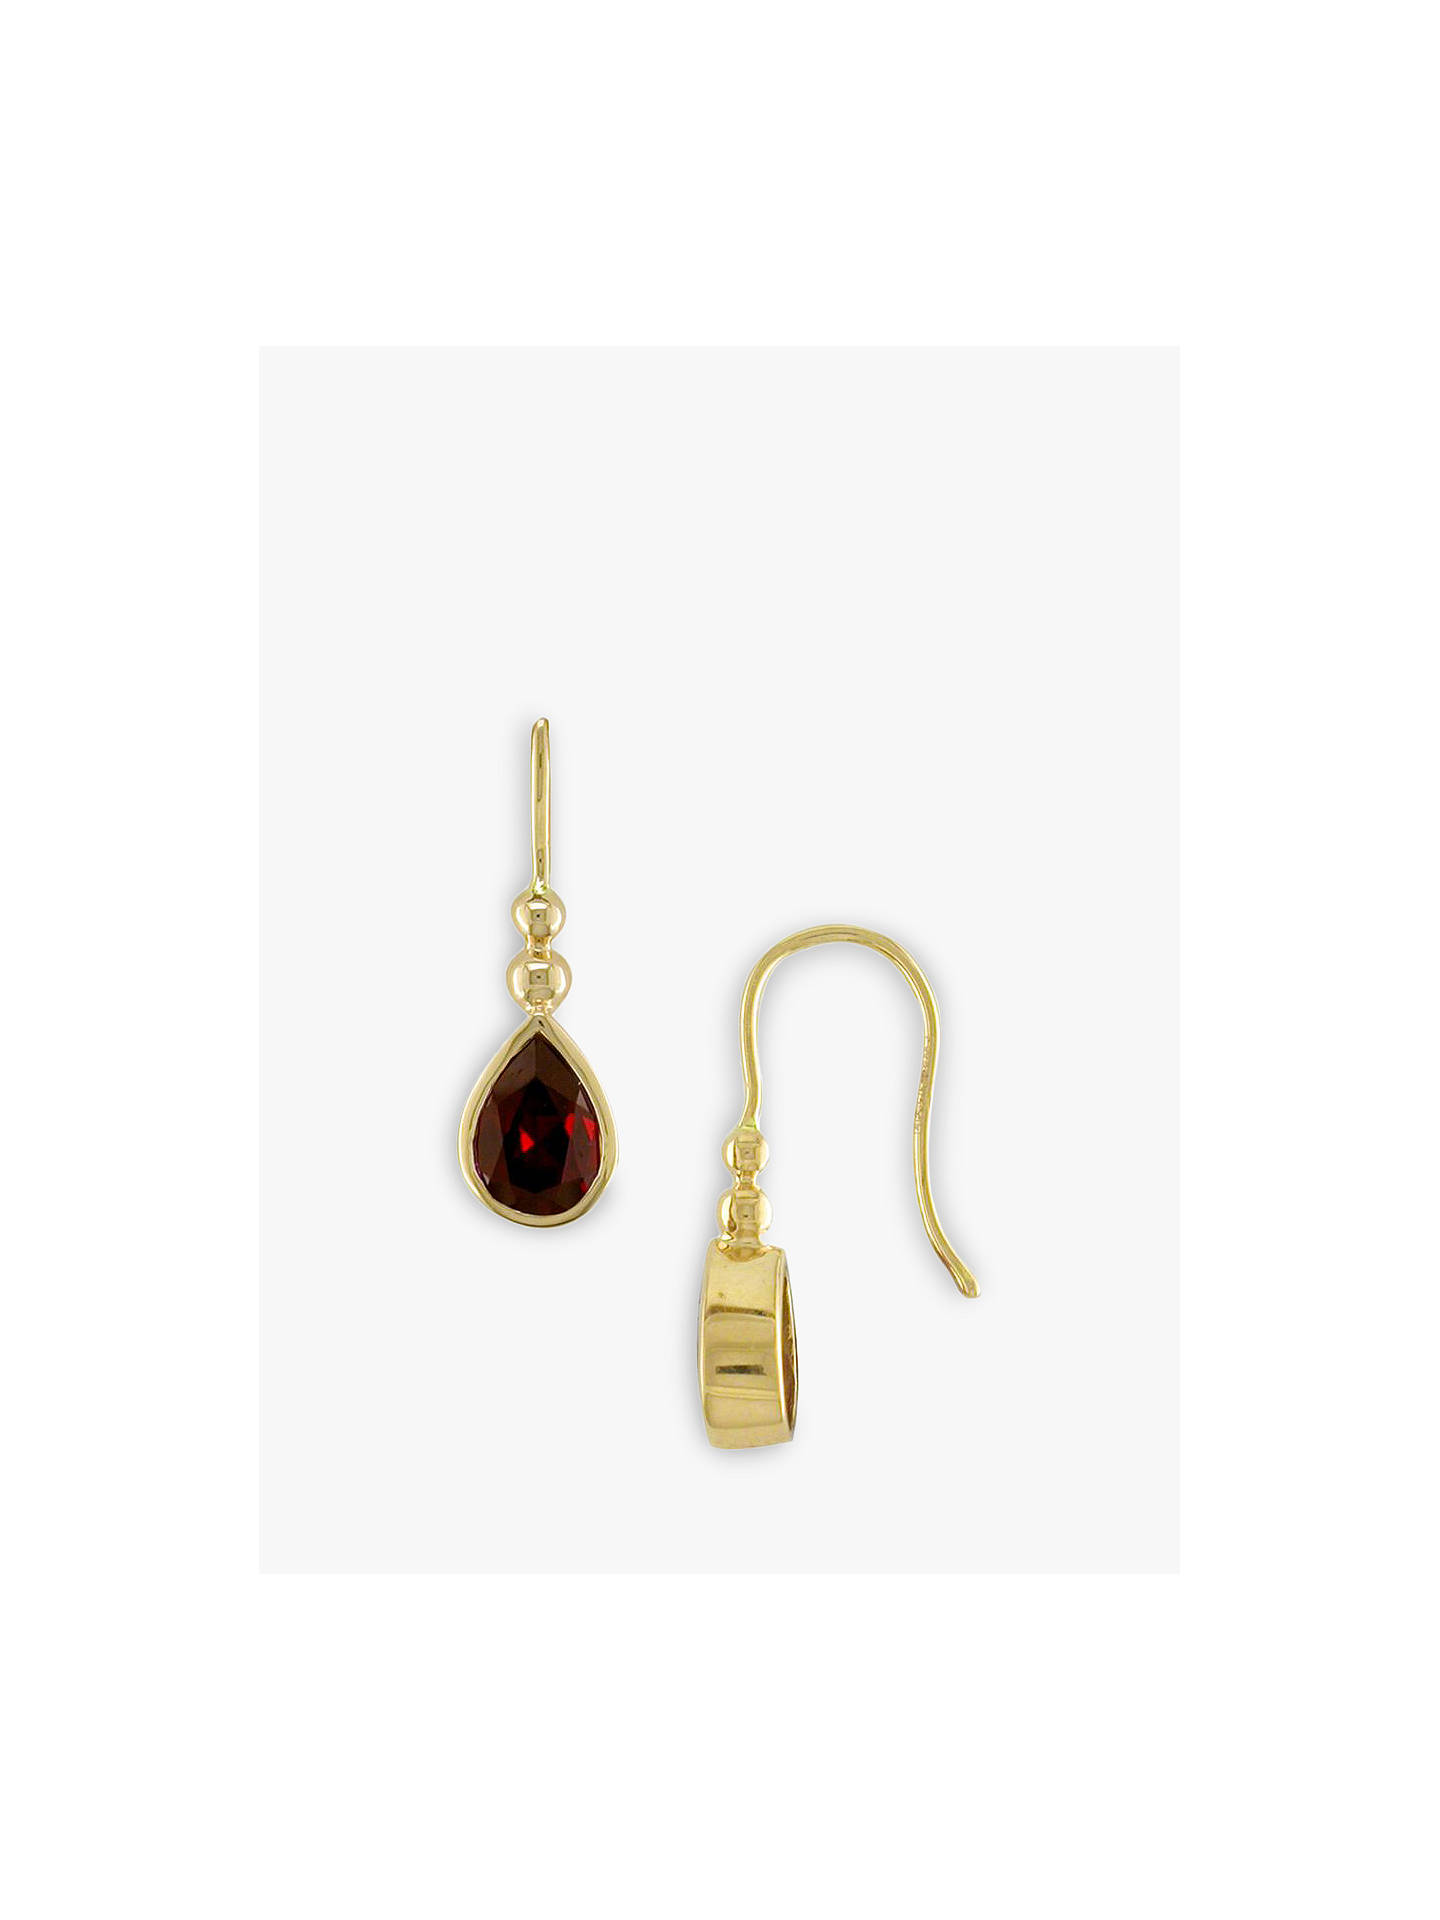 Buy E.W Adams 9ct Yellow Gold Garnet Bead Drop Earrings Online at johnlewis.com